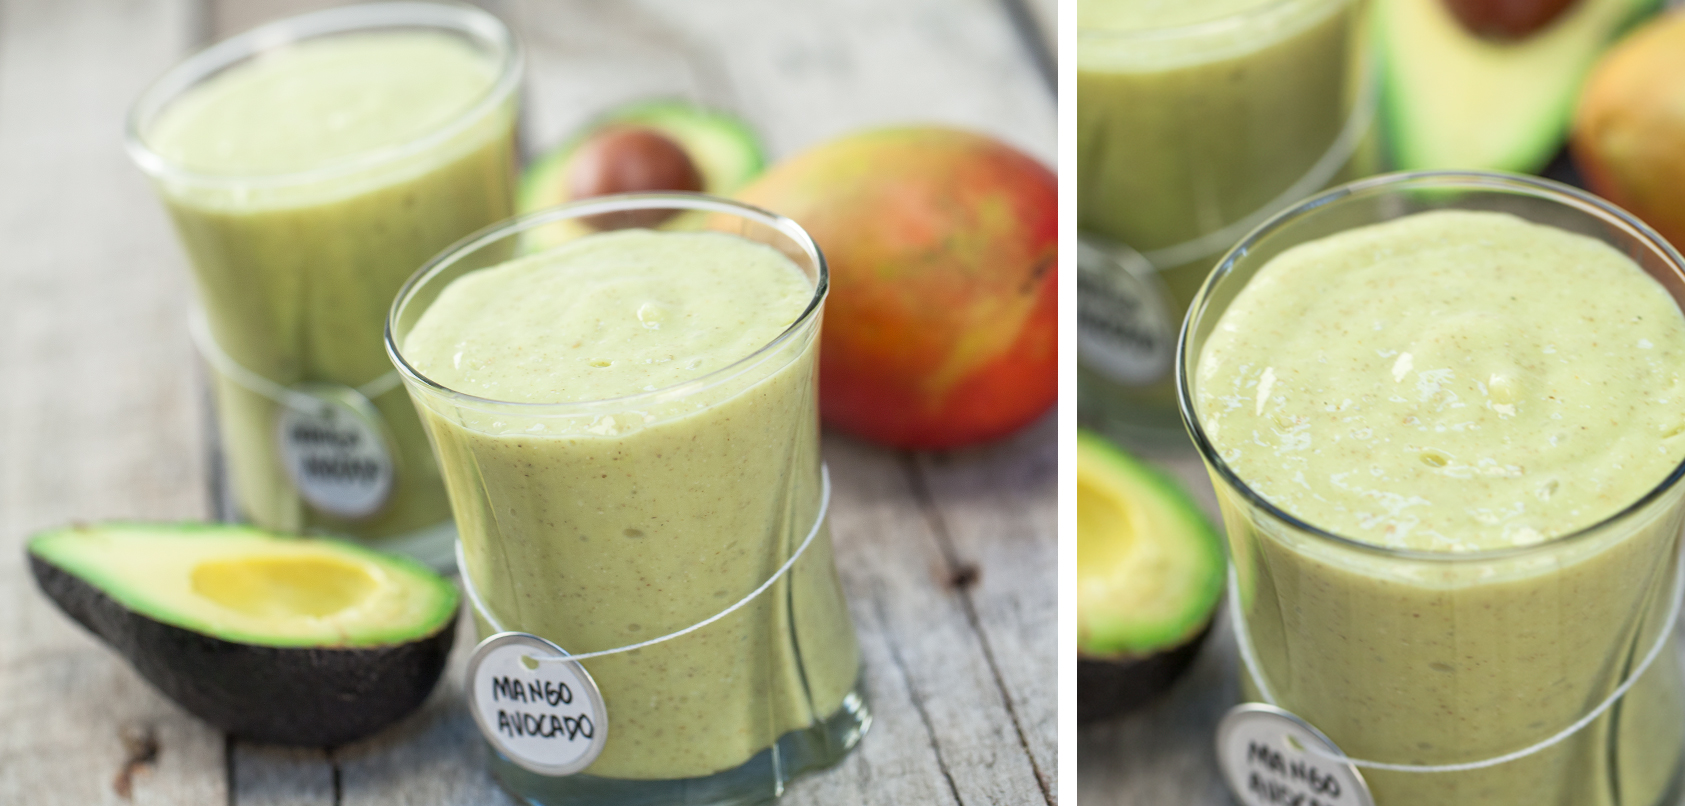 Mango-Avocado Smoothie Blender Recipe